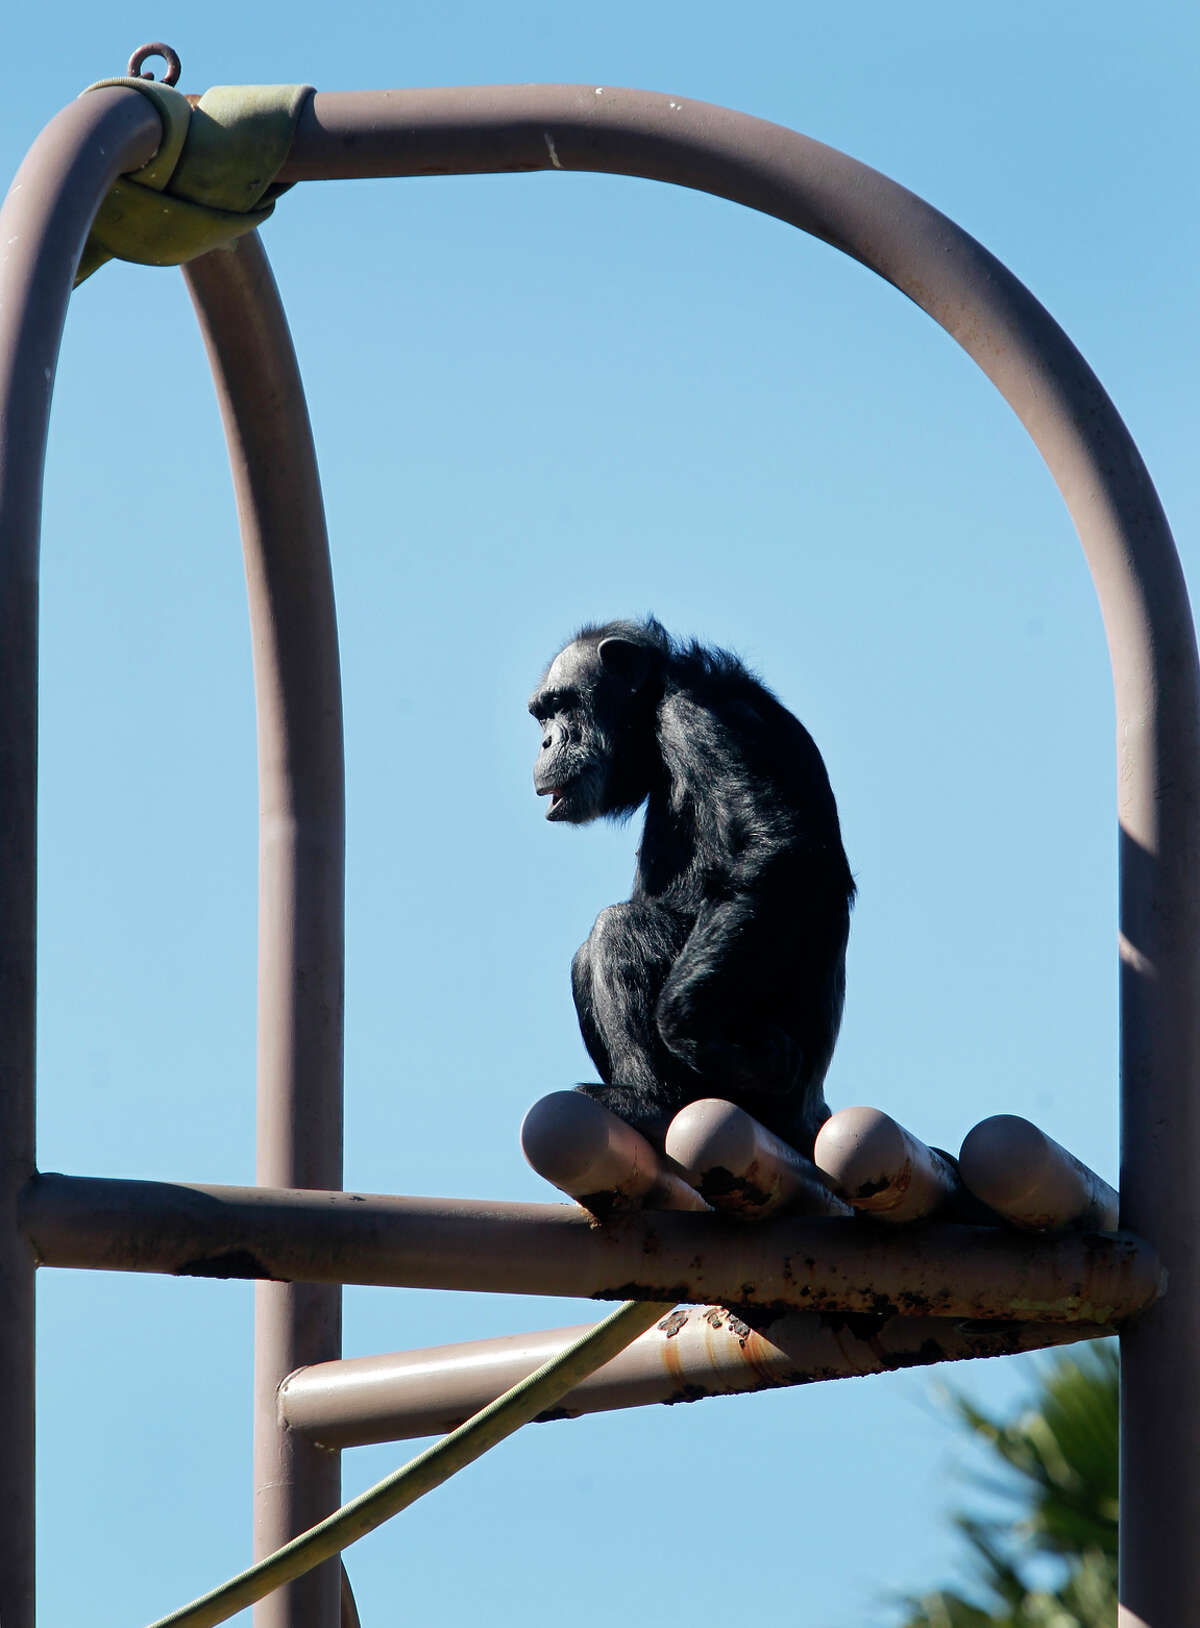 Maggie looks out over the chimpanzee enclosure, which needs to be upgraded if the S.F. Zoo wants to keep the primates and its accreditation.